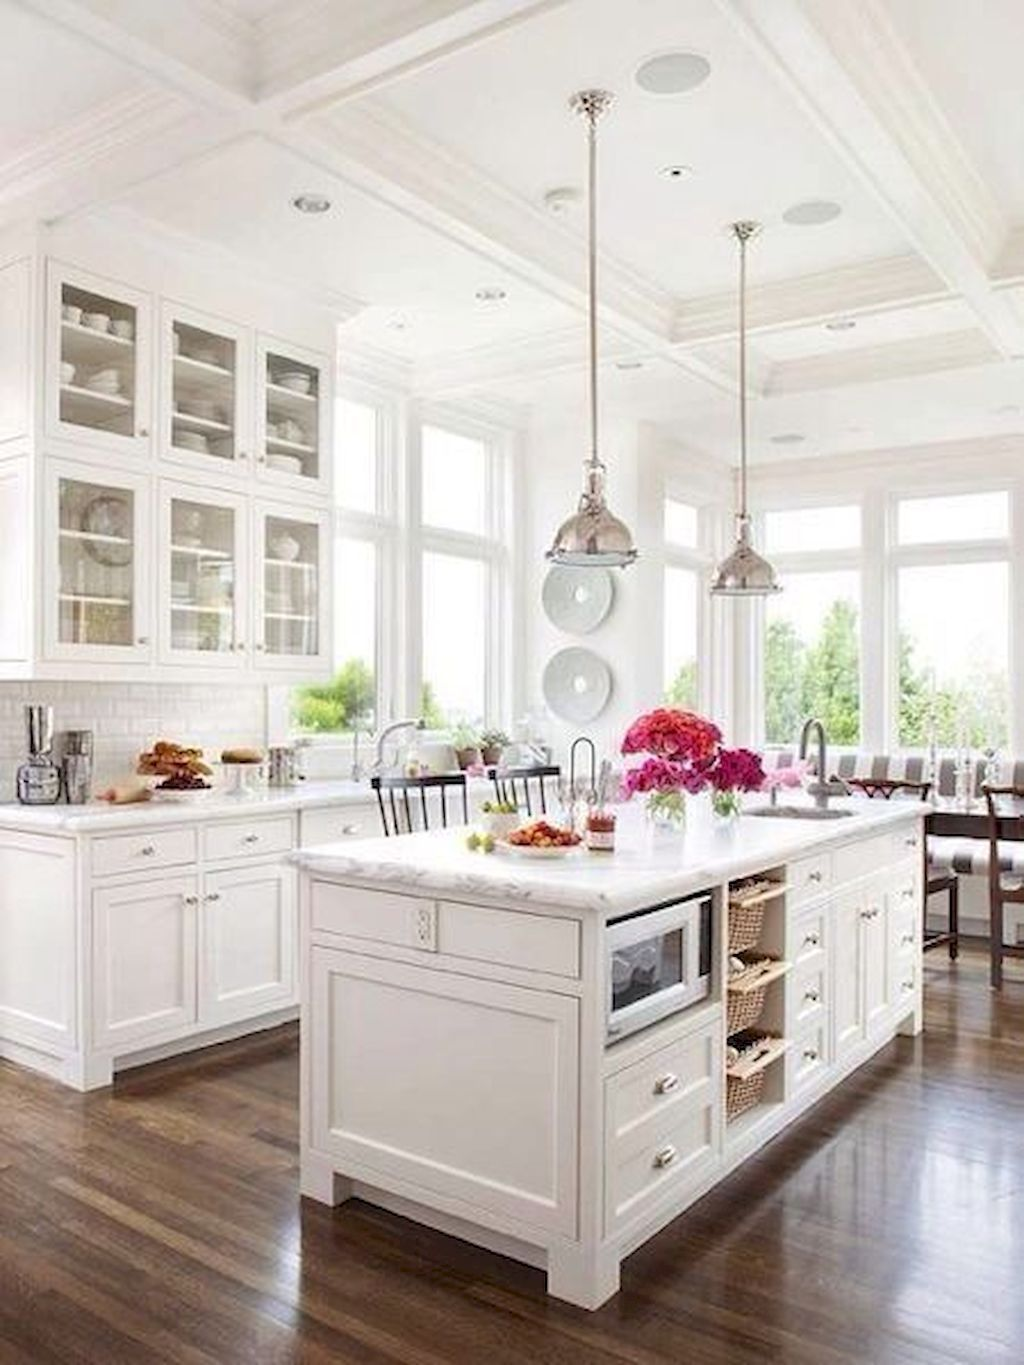 35 Beautiful French Country Kitchen Design and Decor Ideas   Country ...